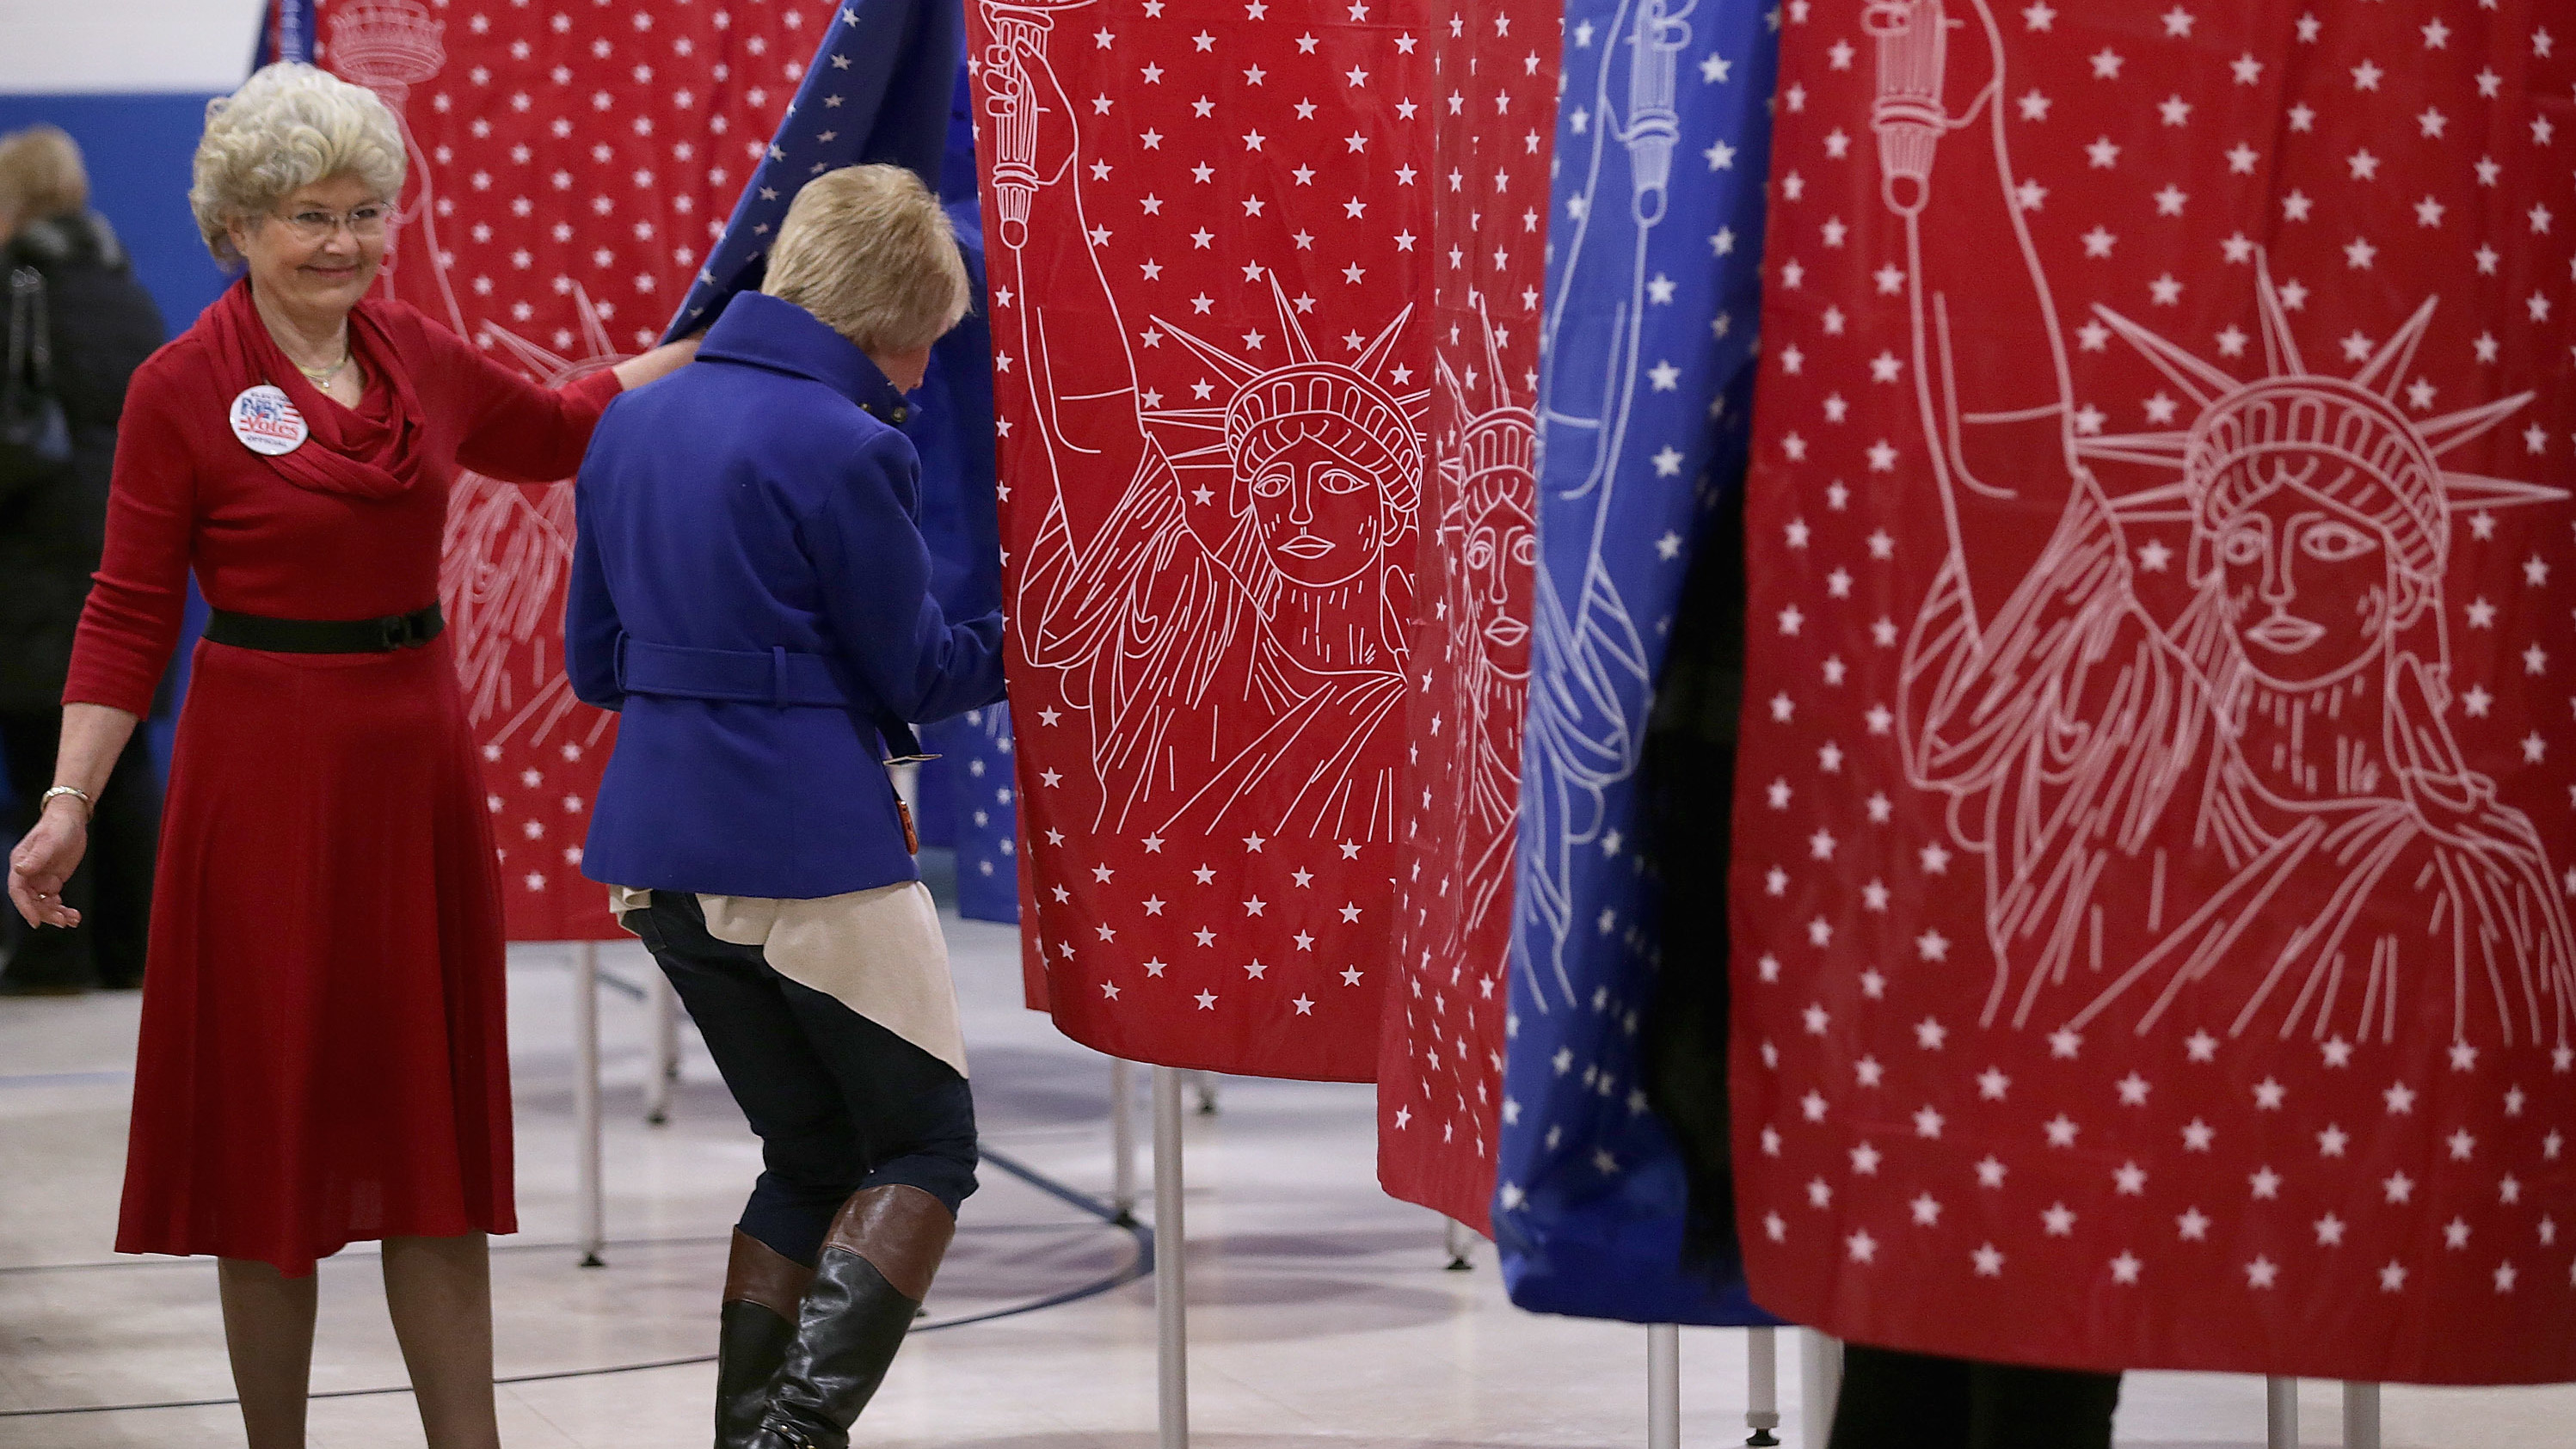 New Jersey election officials see no fraud